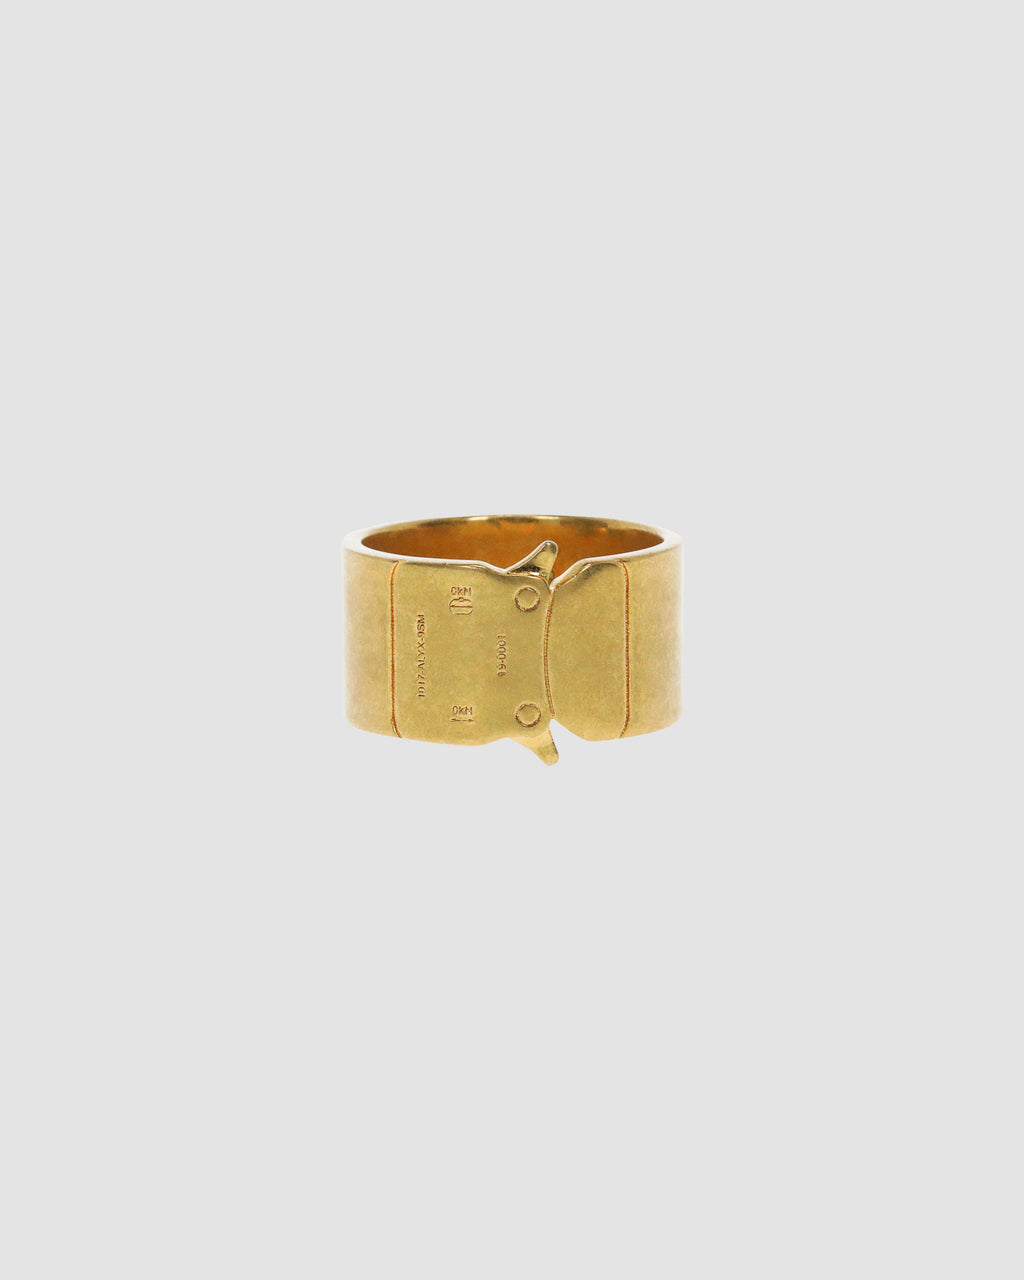 1017 ALYX 9SM | BUCKLE RING | Jewellery | Accessories, GOLD, Google Shopping, Jewellery, jewelry, Man, S20, S20 Drop II, UNISEX, Woman